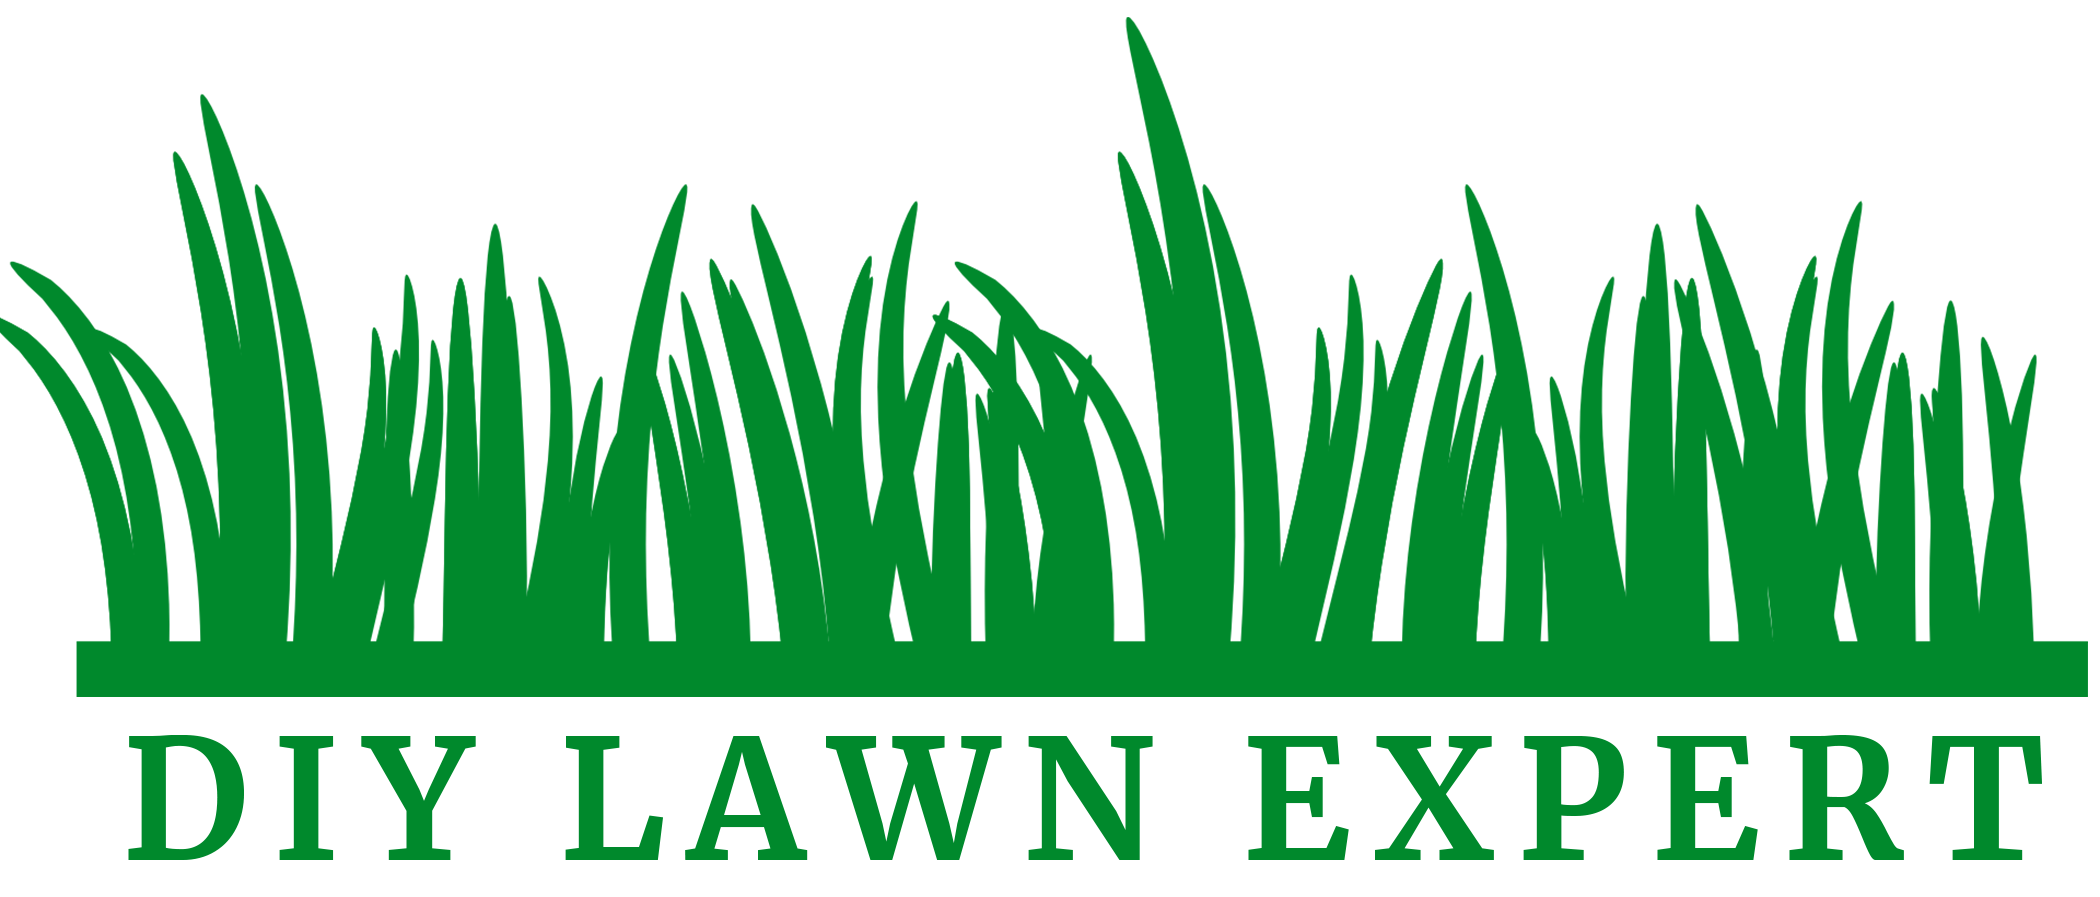 Real world tips and information about lawn care written by a real person who loves having a great lawn.